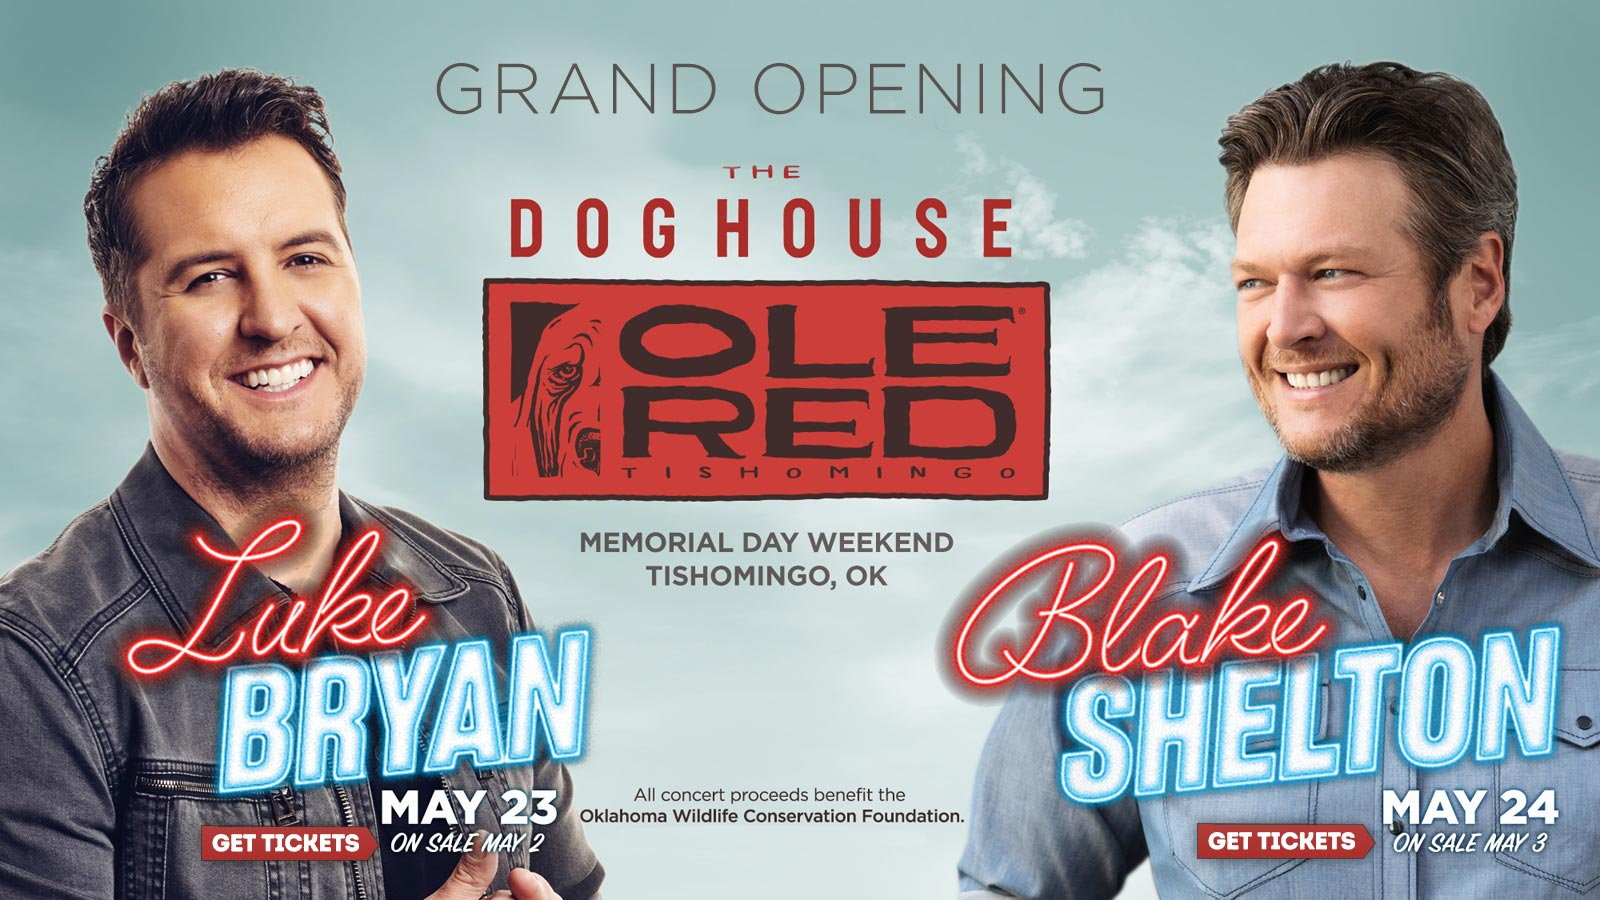 The Doghouse Grand Opening